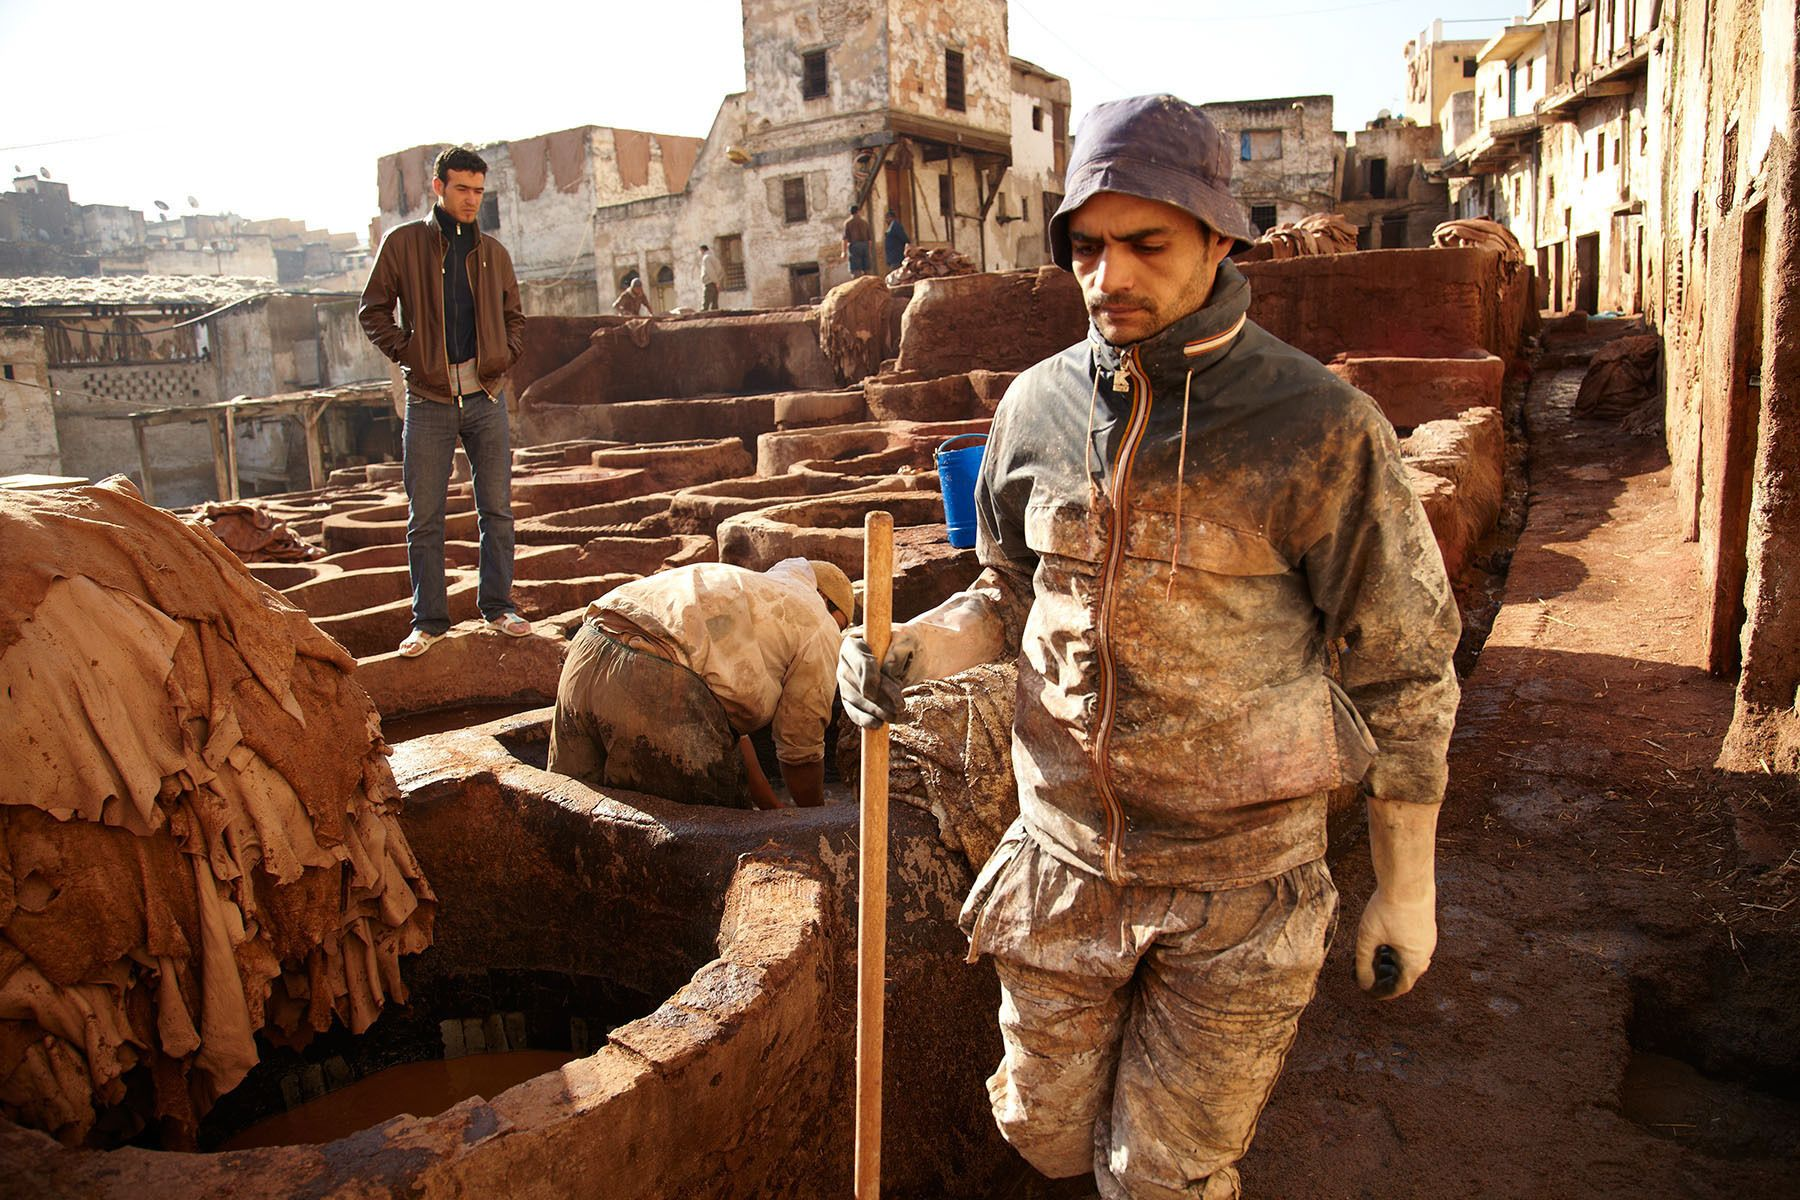 Workers at a tannery in Fez, Morocco